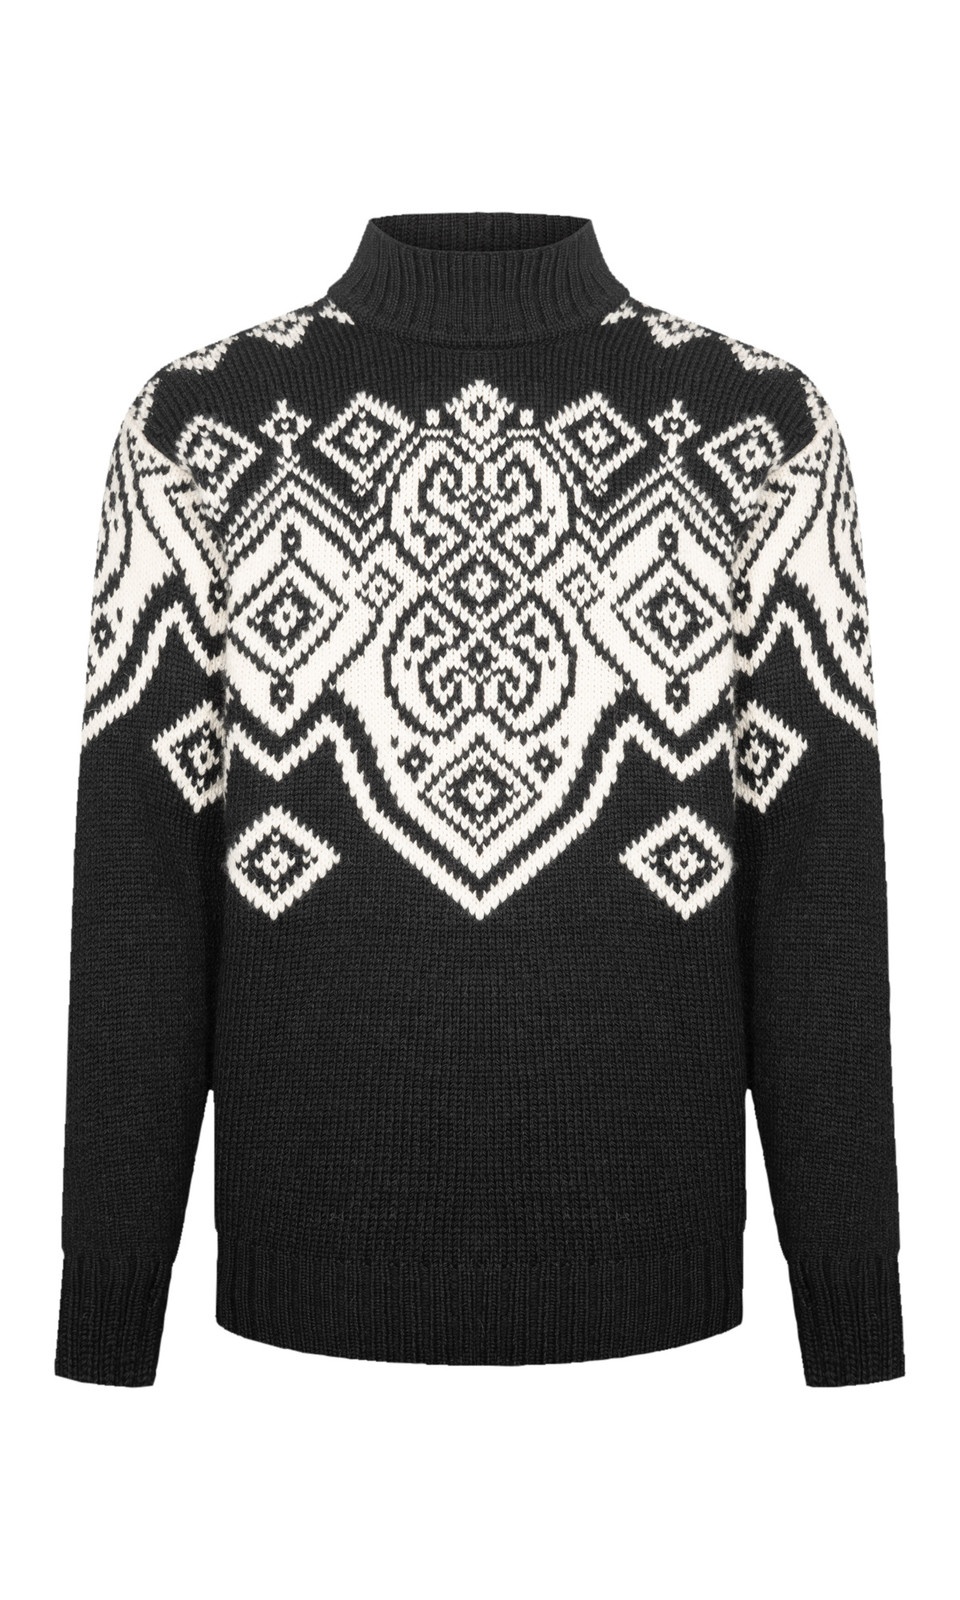 Dale of Norway Falun Sweater, Mens- Black/Off White, 94451-F (94451-F)